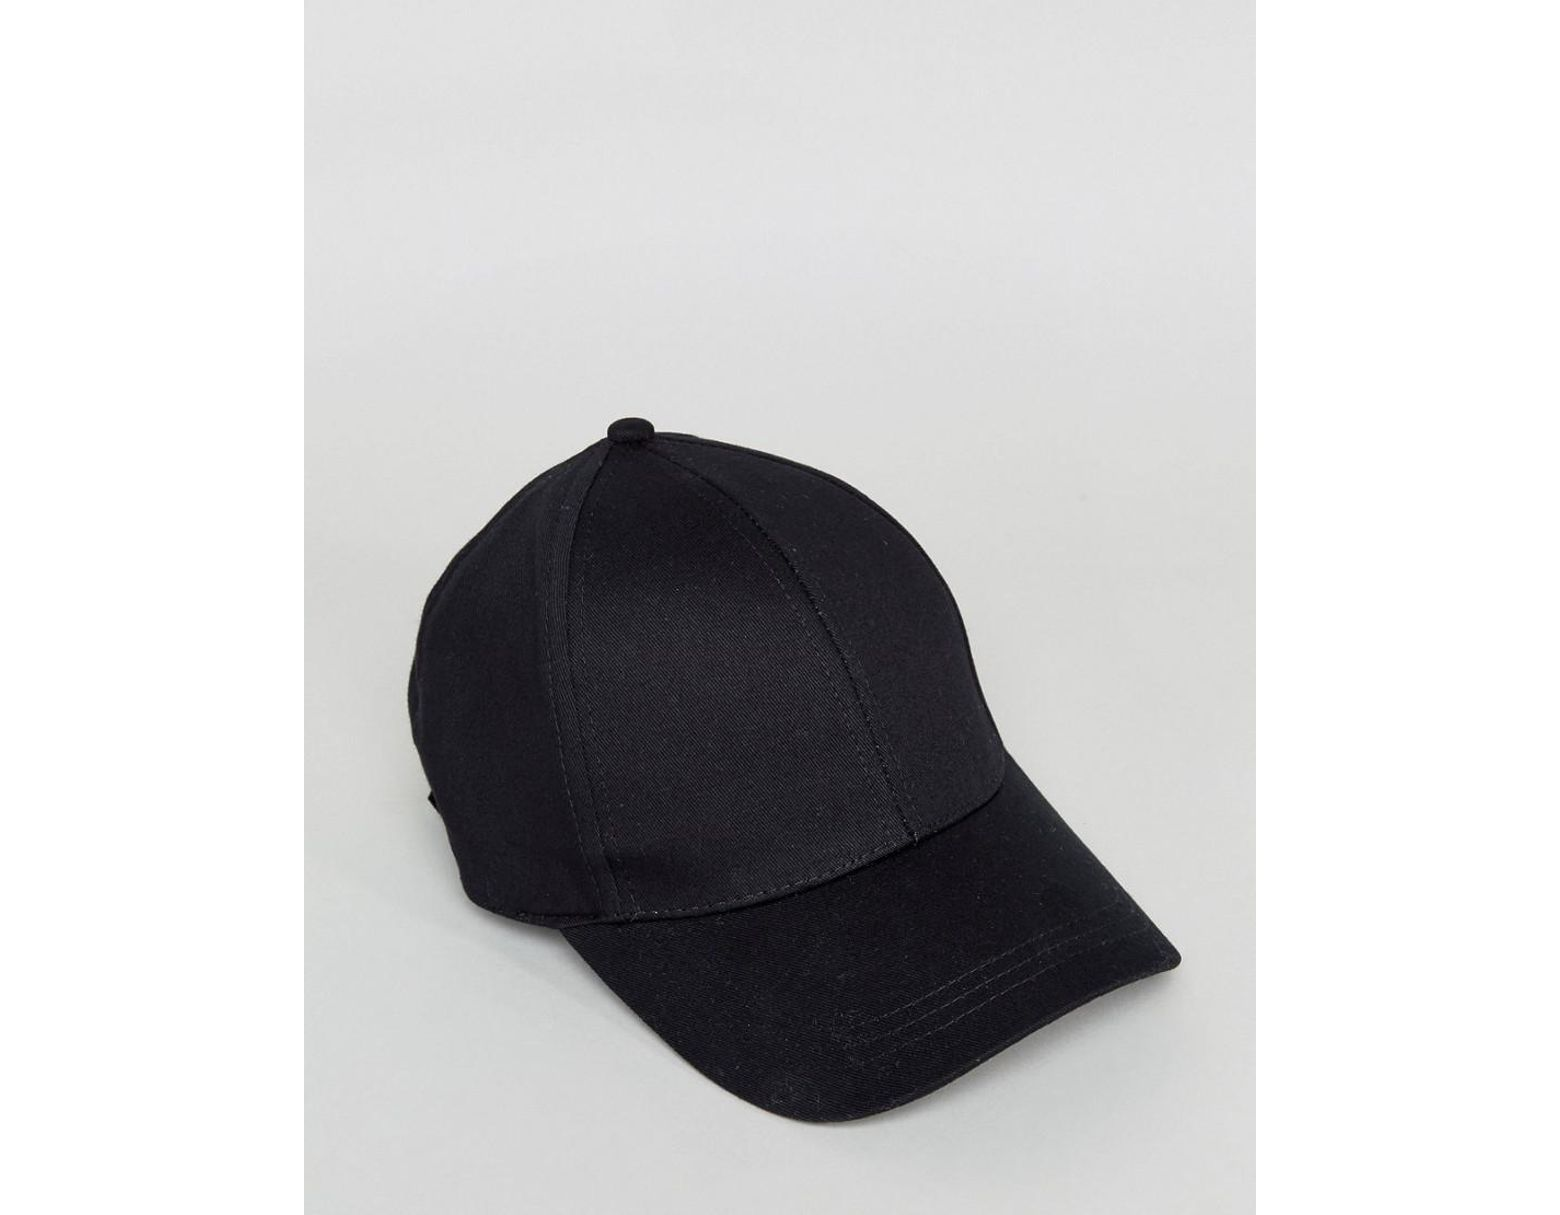 c84f39cad25bbc ASOS Plain Baseball Cap With New Fit in Black - Lyst